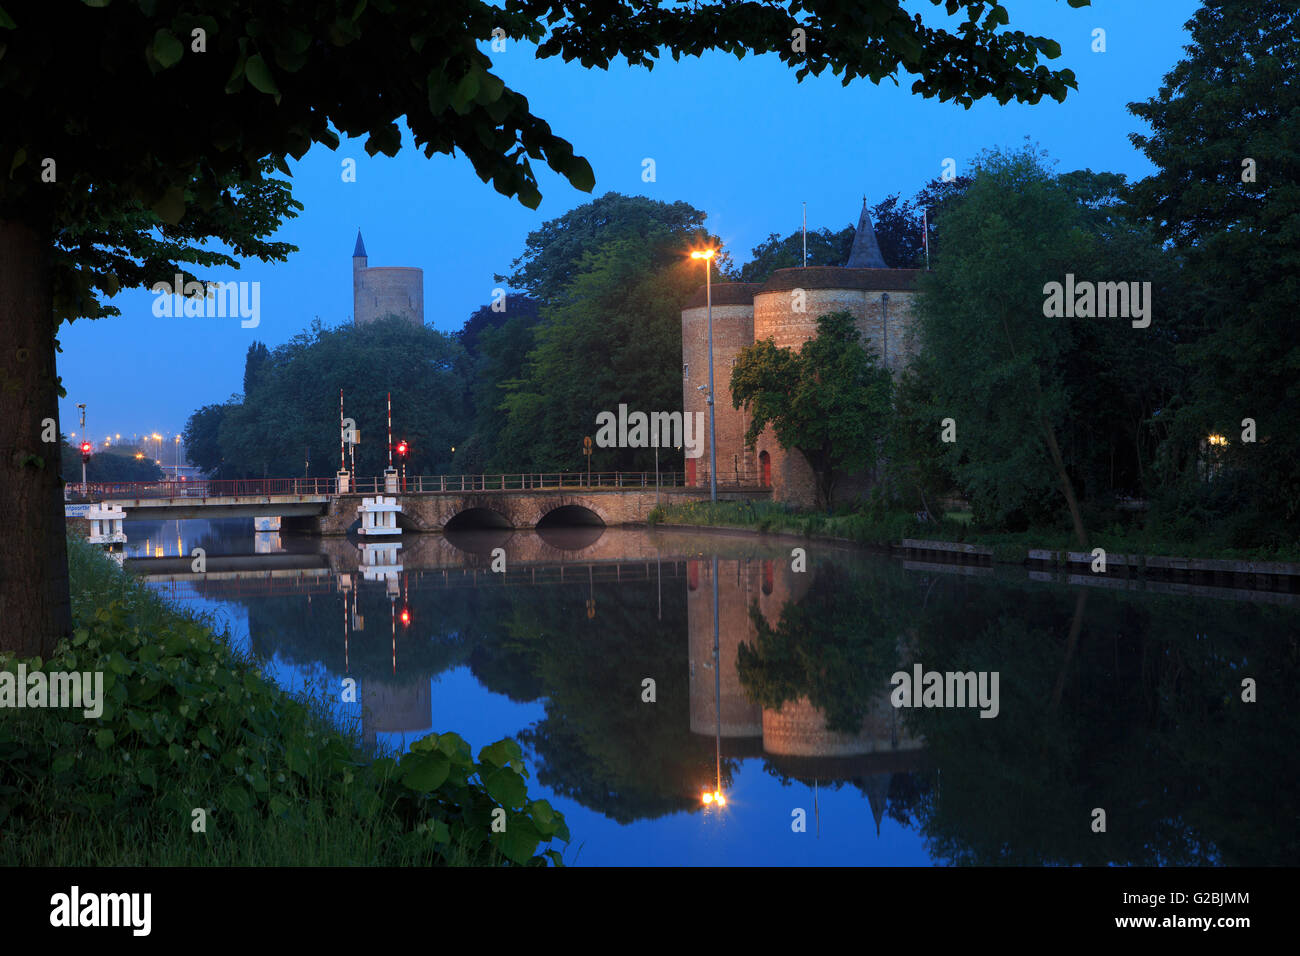 The Gate of Ghent - Gentpoort (1400) and Water tower (1925) in Bruges, Belgium Stock Photo